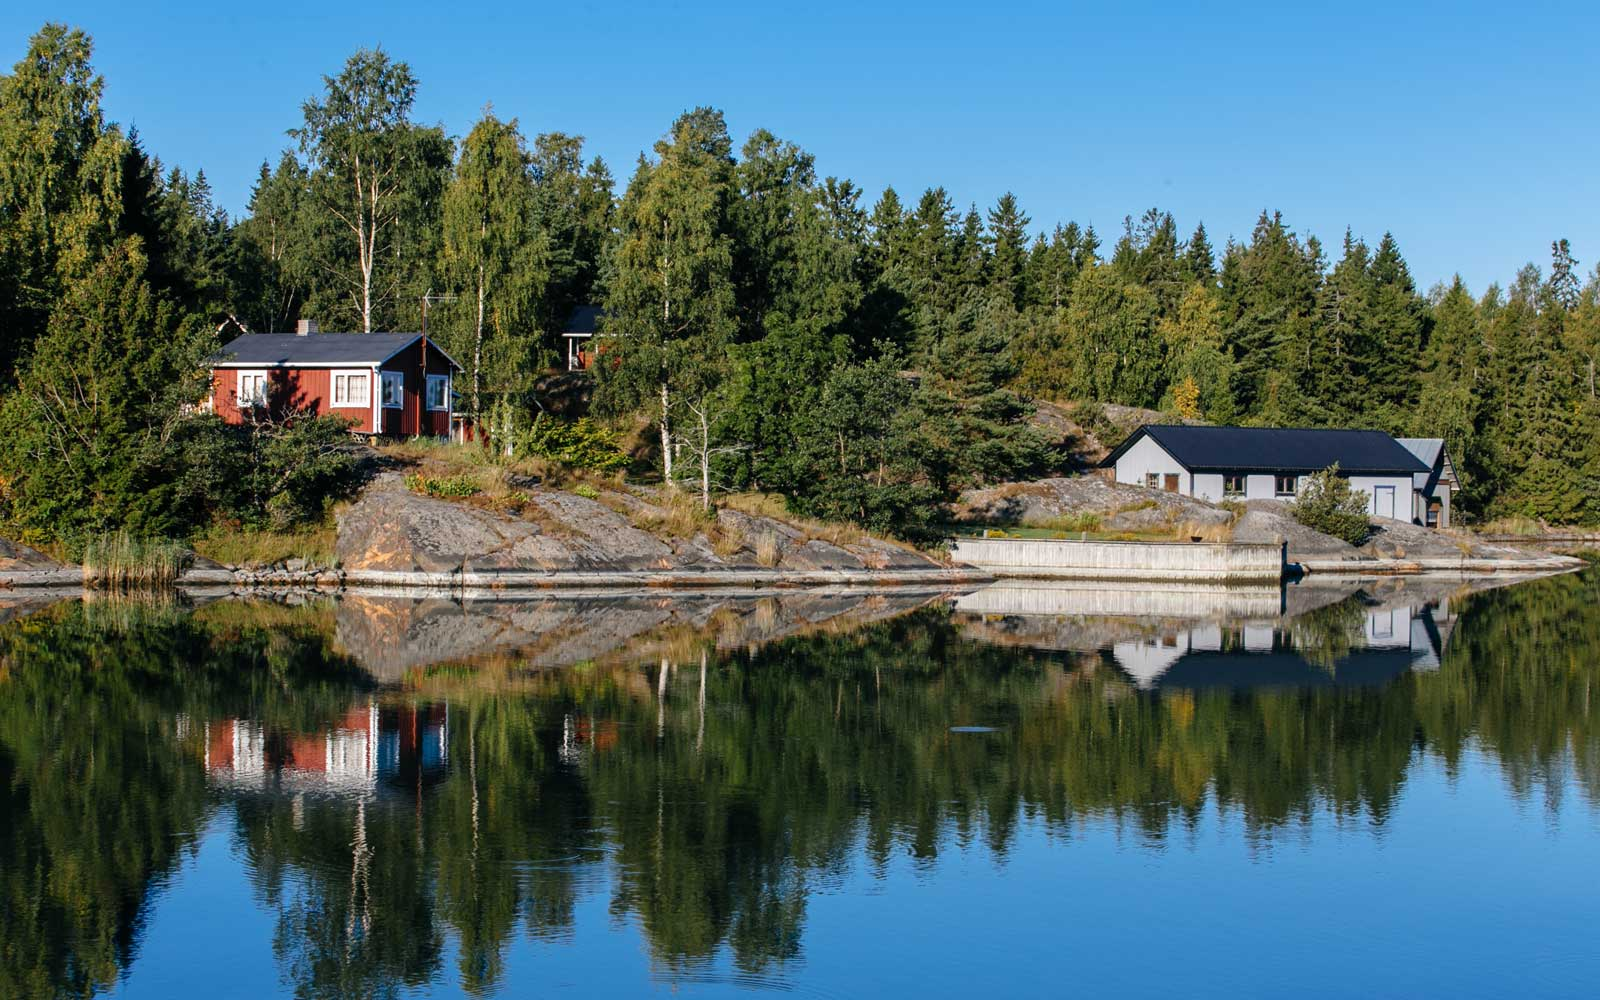 Taste One of the World's Oldest Beers and See an Original Pirate Flag in This Scandinavian Archipelago